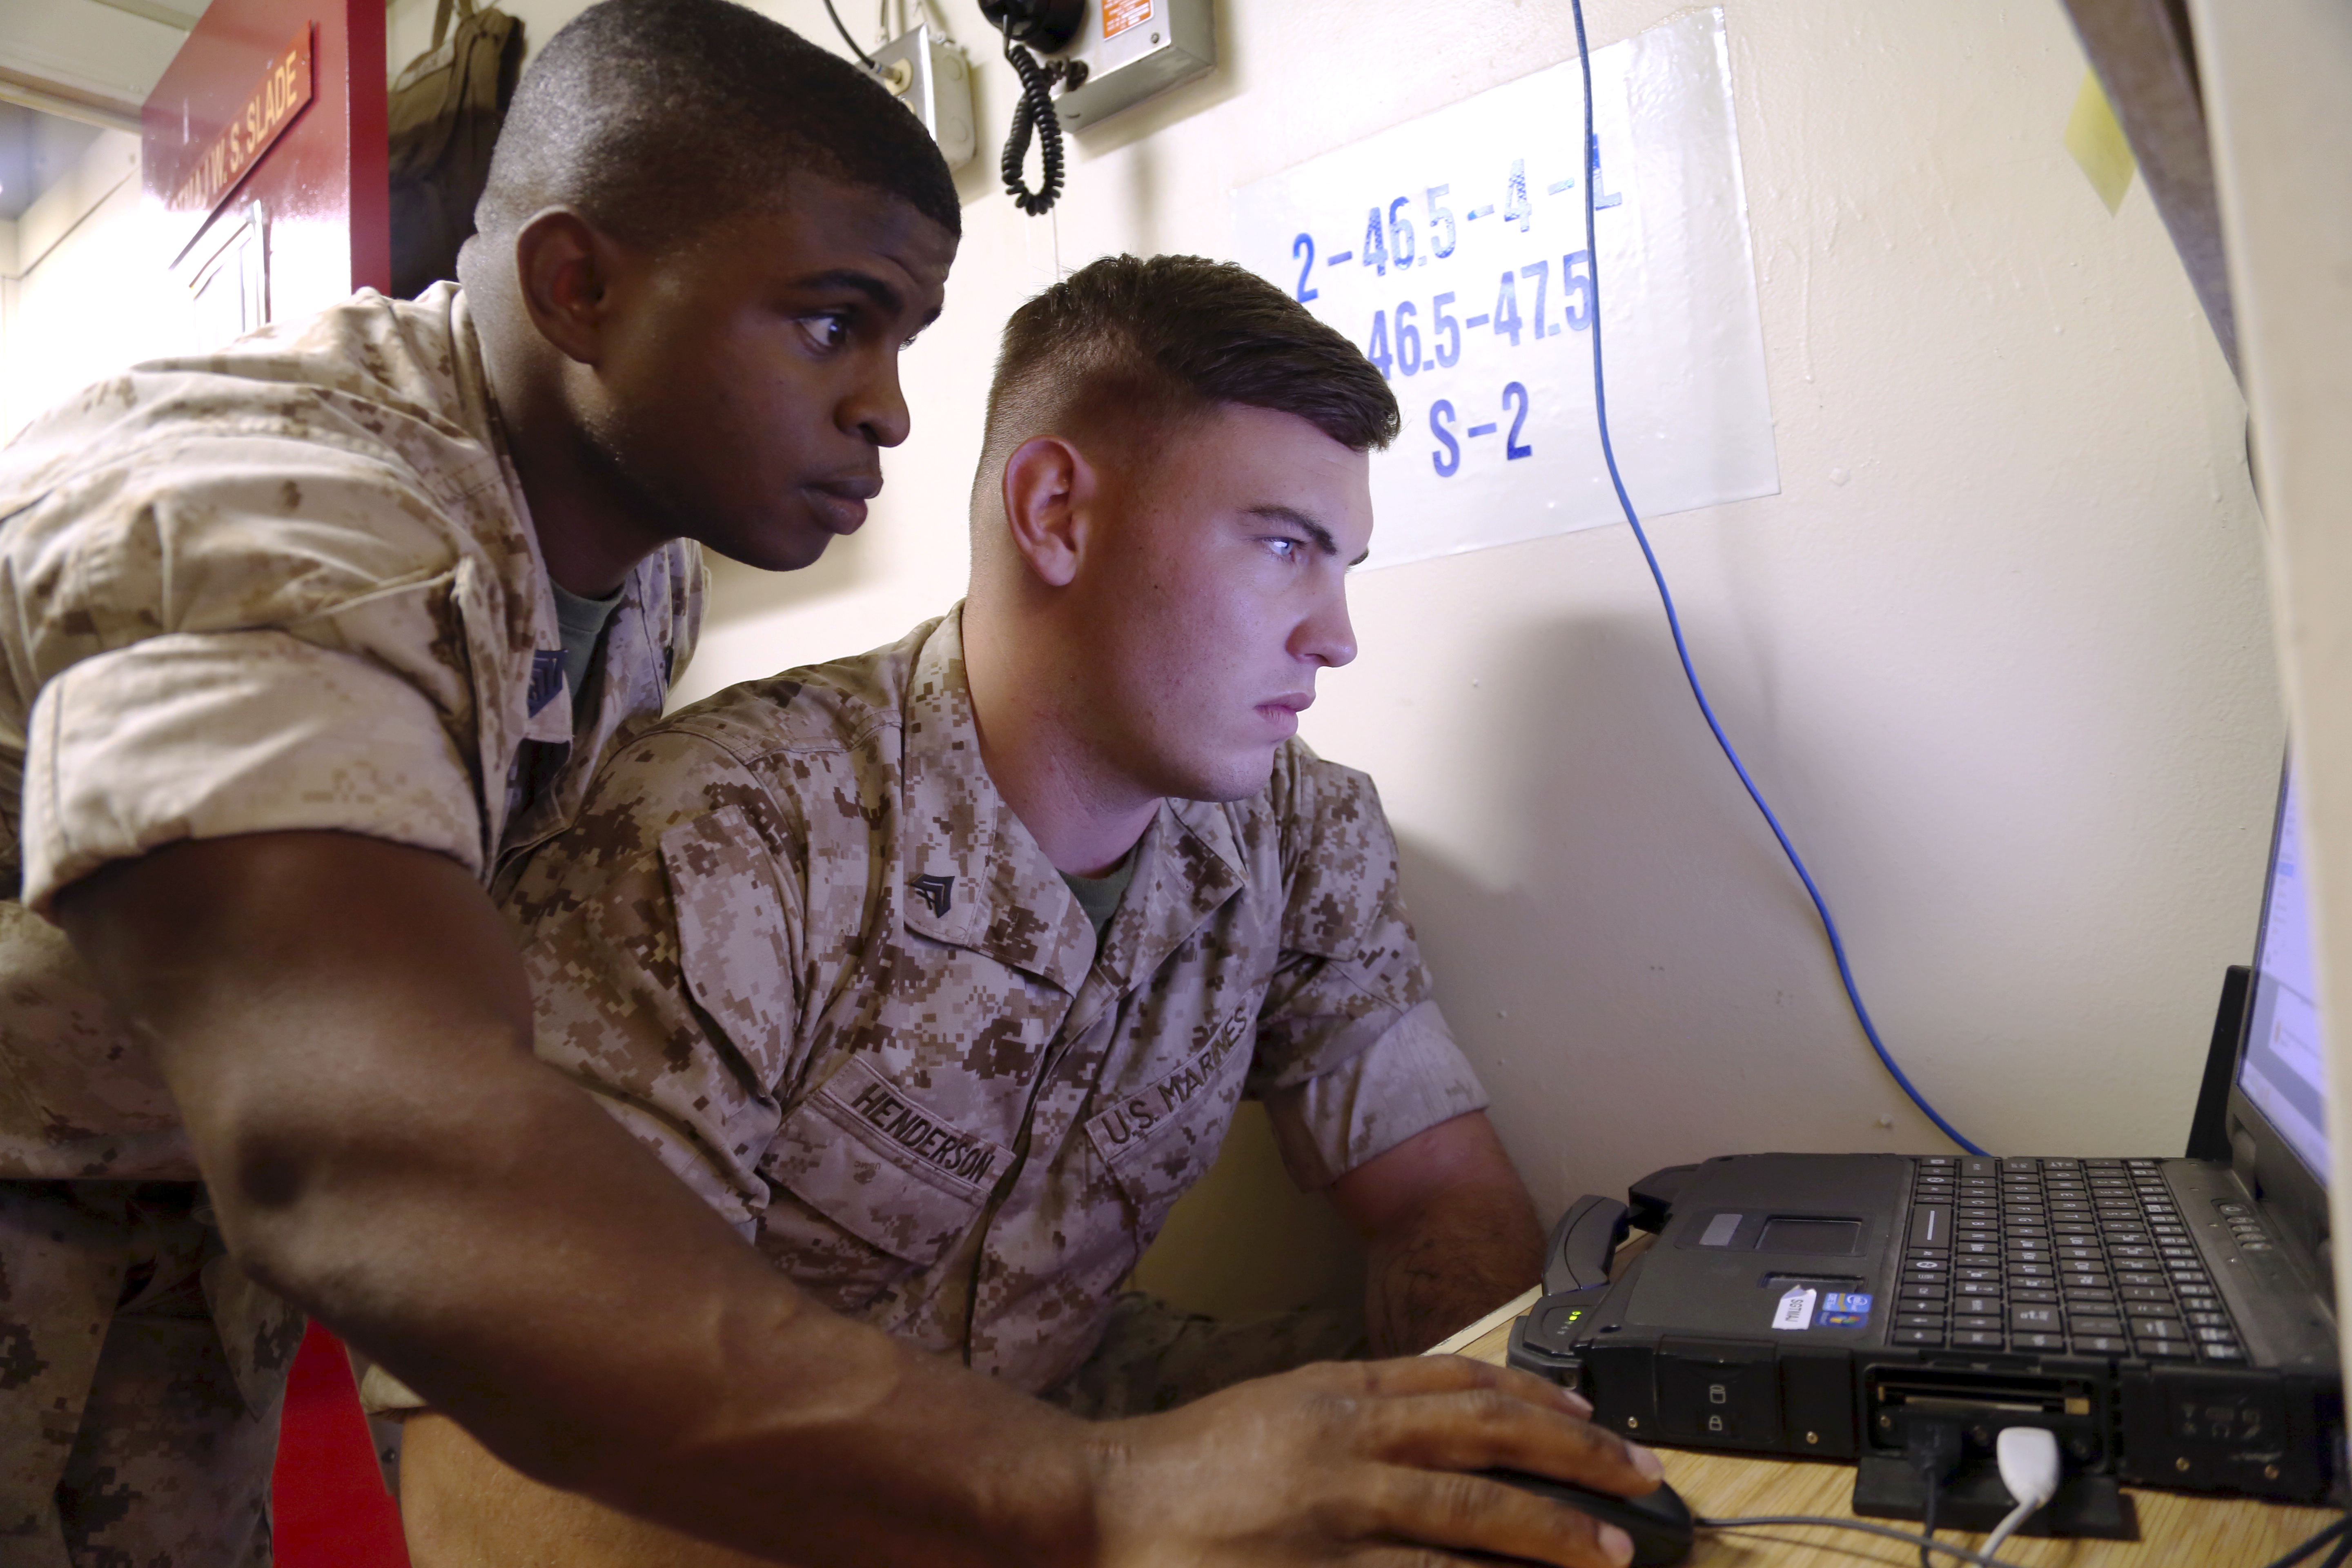 MARFORCYBER is partnering with other Marine Corps organizations such as Systems Command to equip their cyber warriors. (Staff Sgt. Terika S. King/Marine Corps)